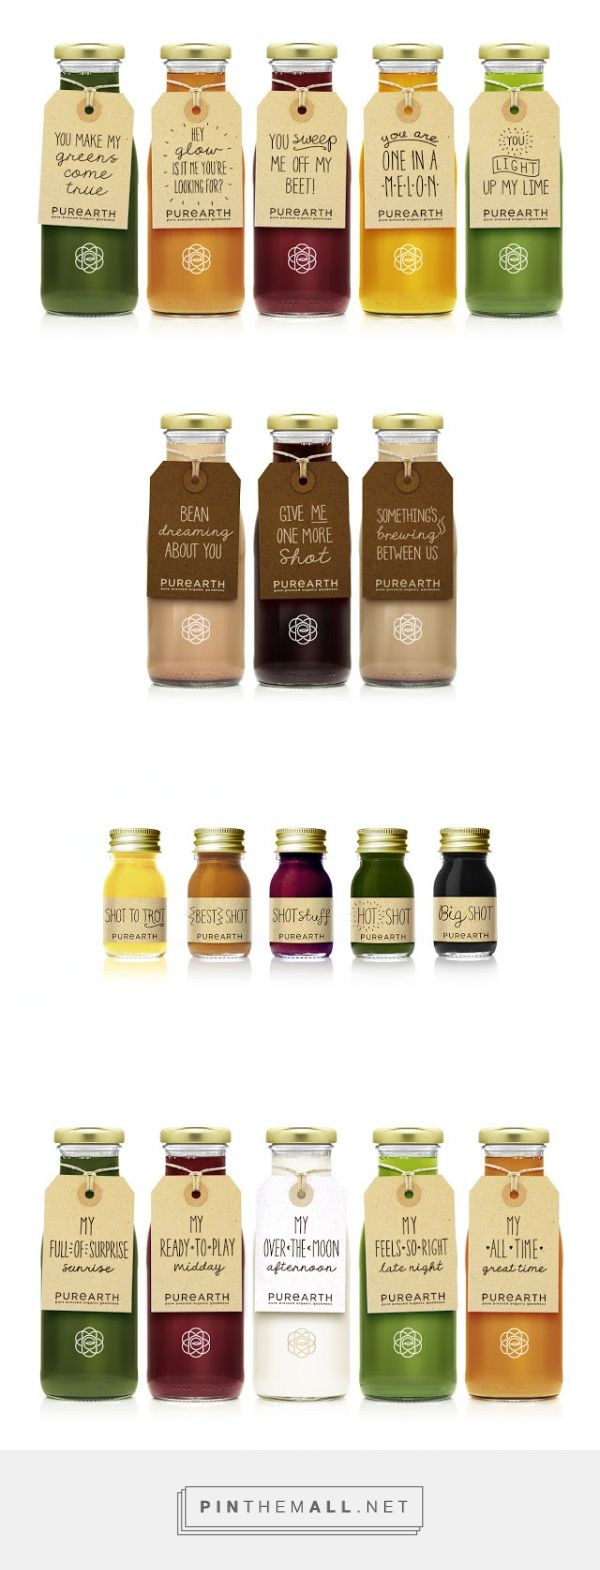 Purearth #juice #packaging designed by Afterhours - http://www.packagingoftheworld.com/2015/03/purearth.html